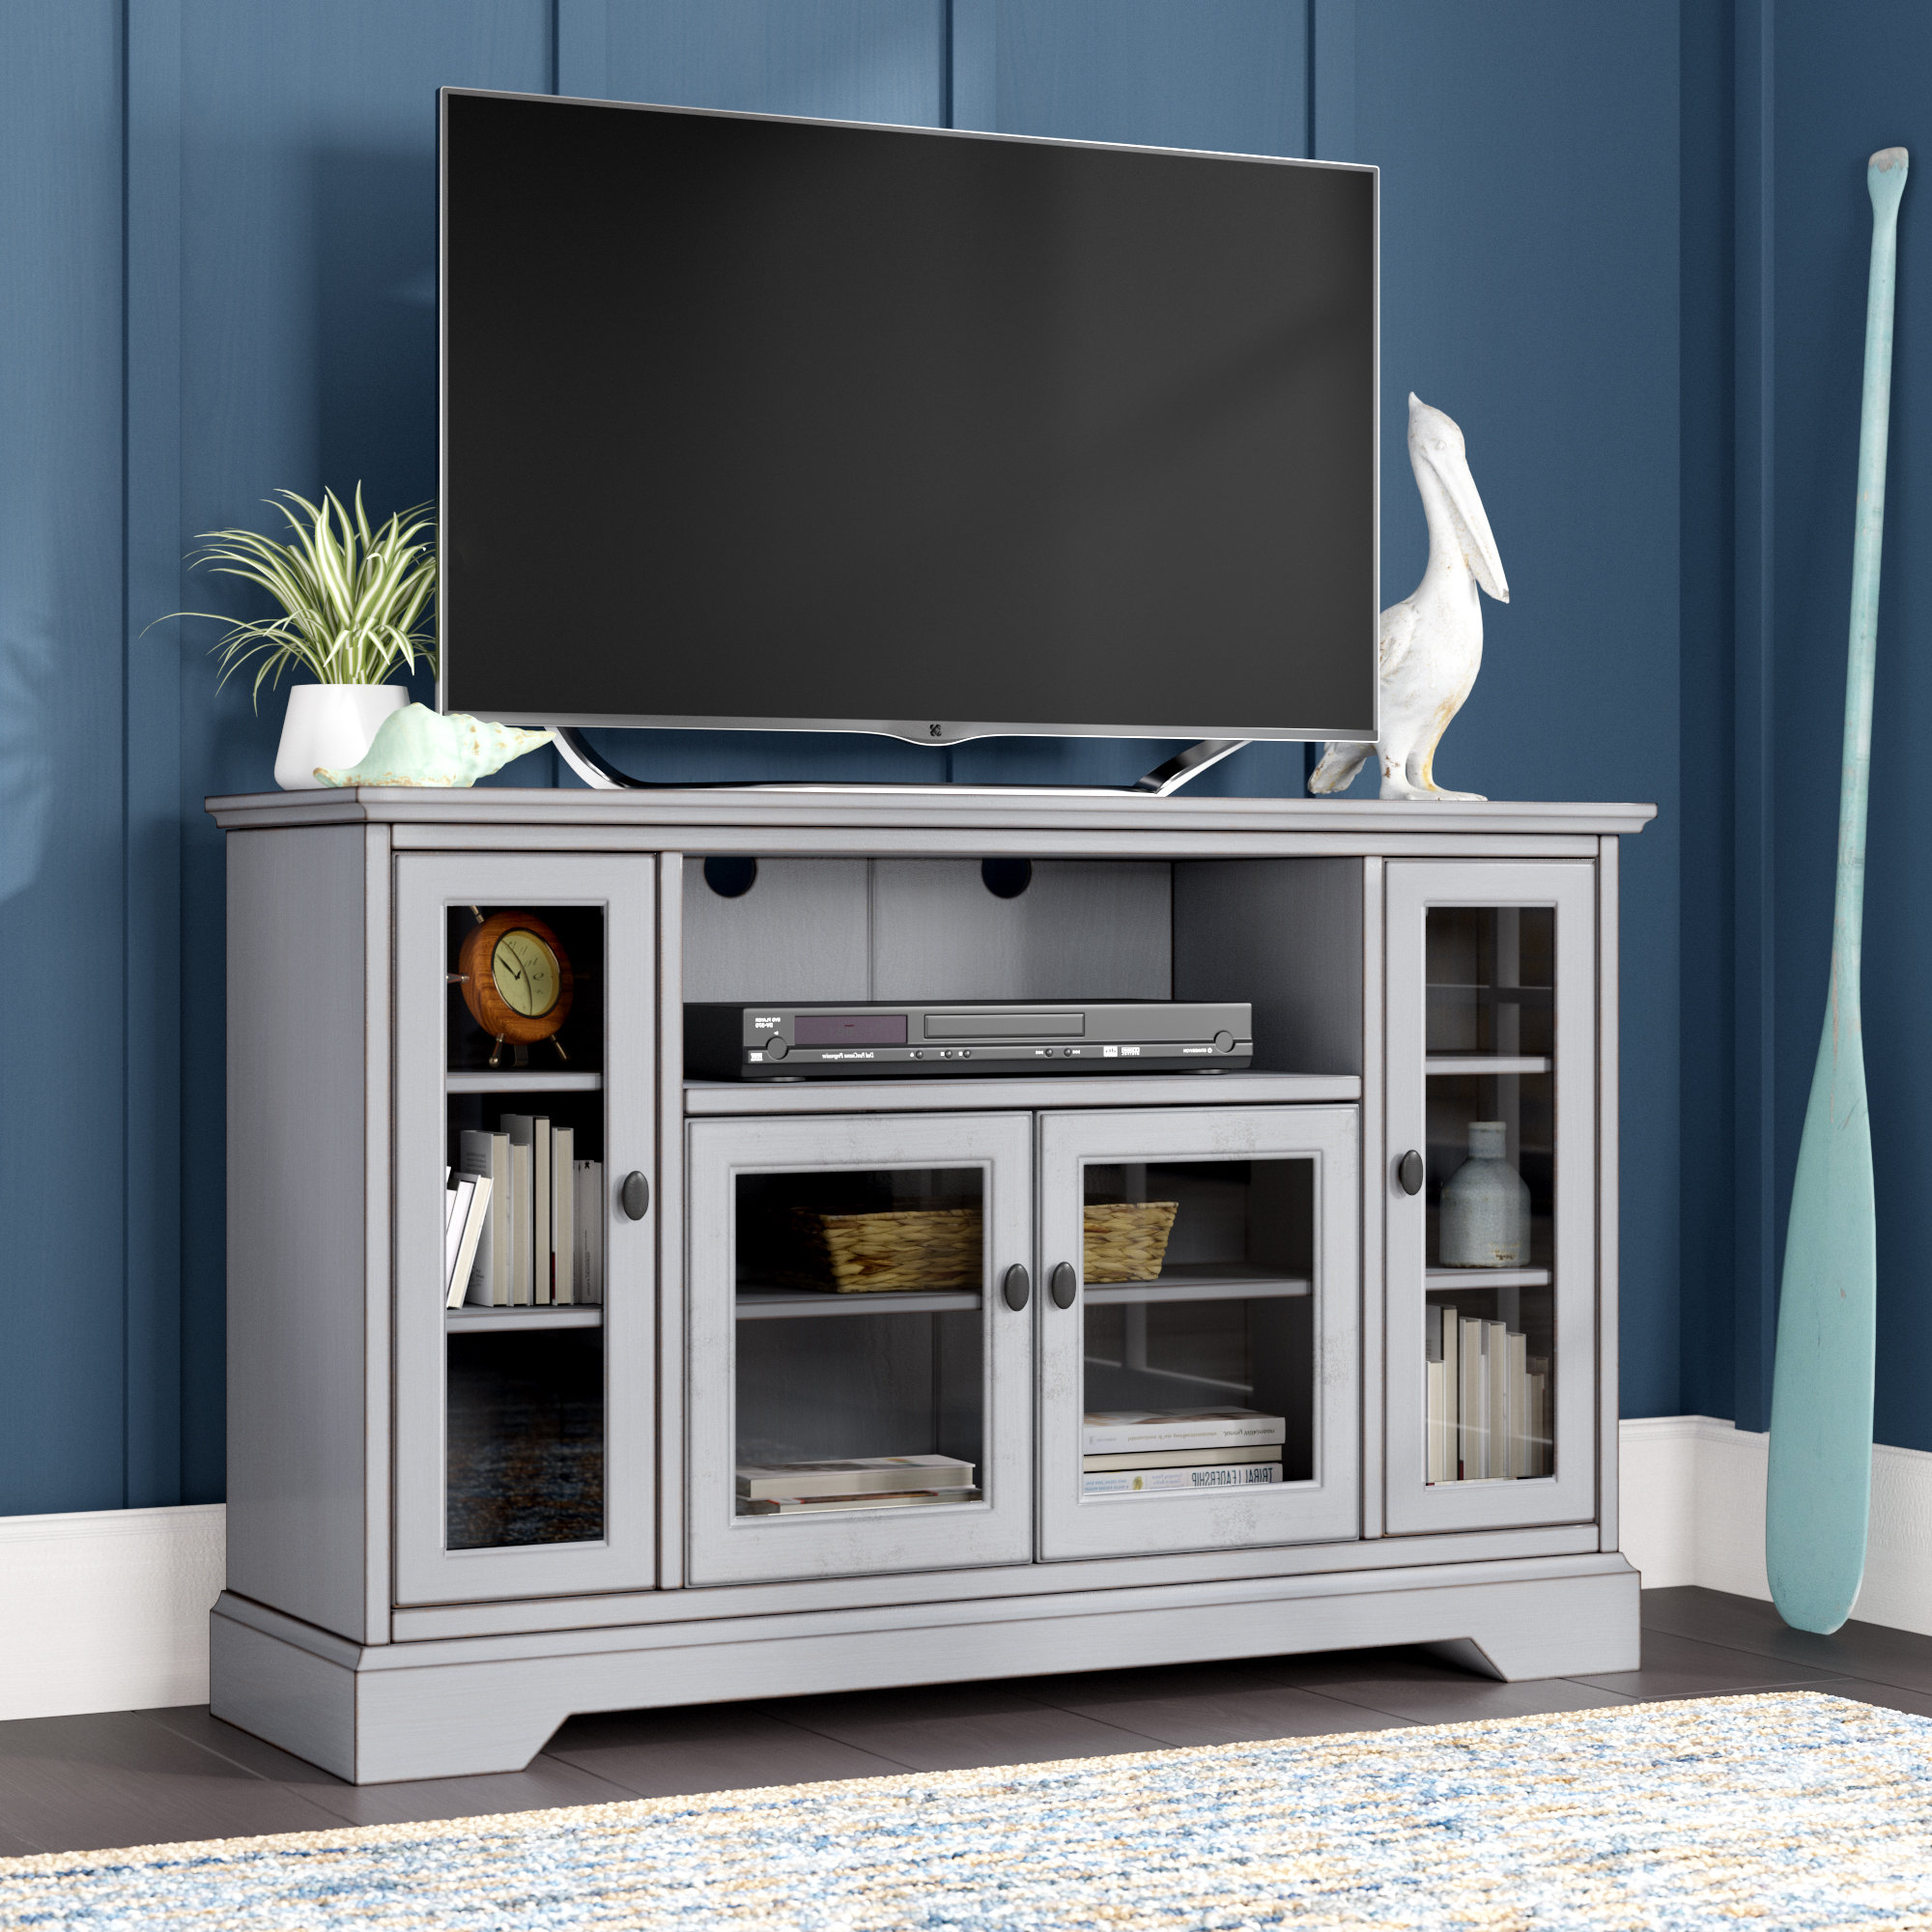 Tall Tv Stands You'll Love | Wayfair For Wyatt 68 Inch Tv Stands (View 10 of 20)